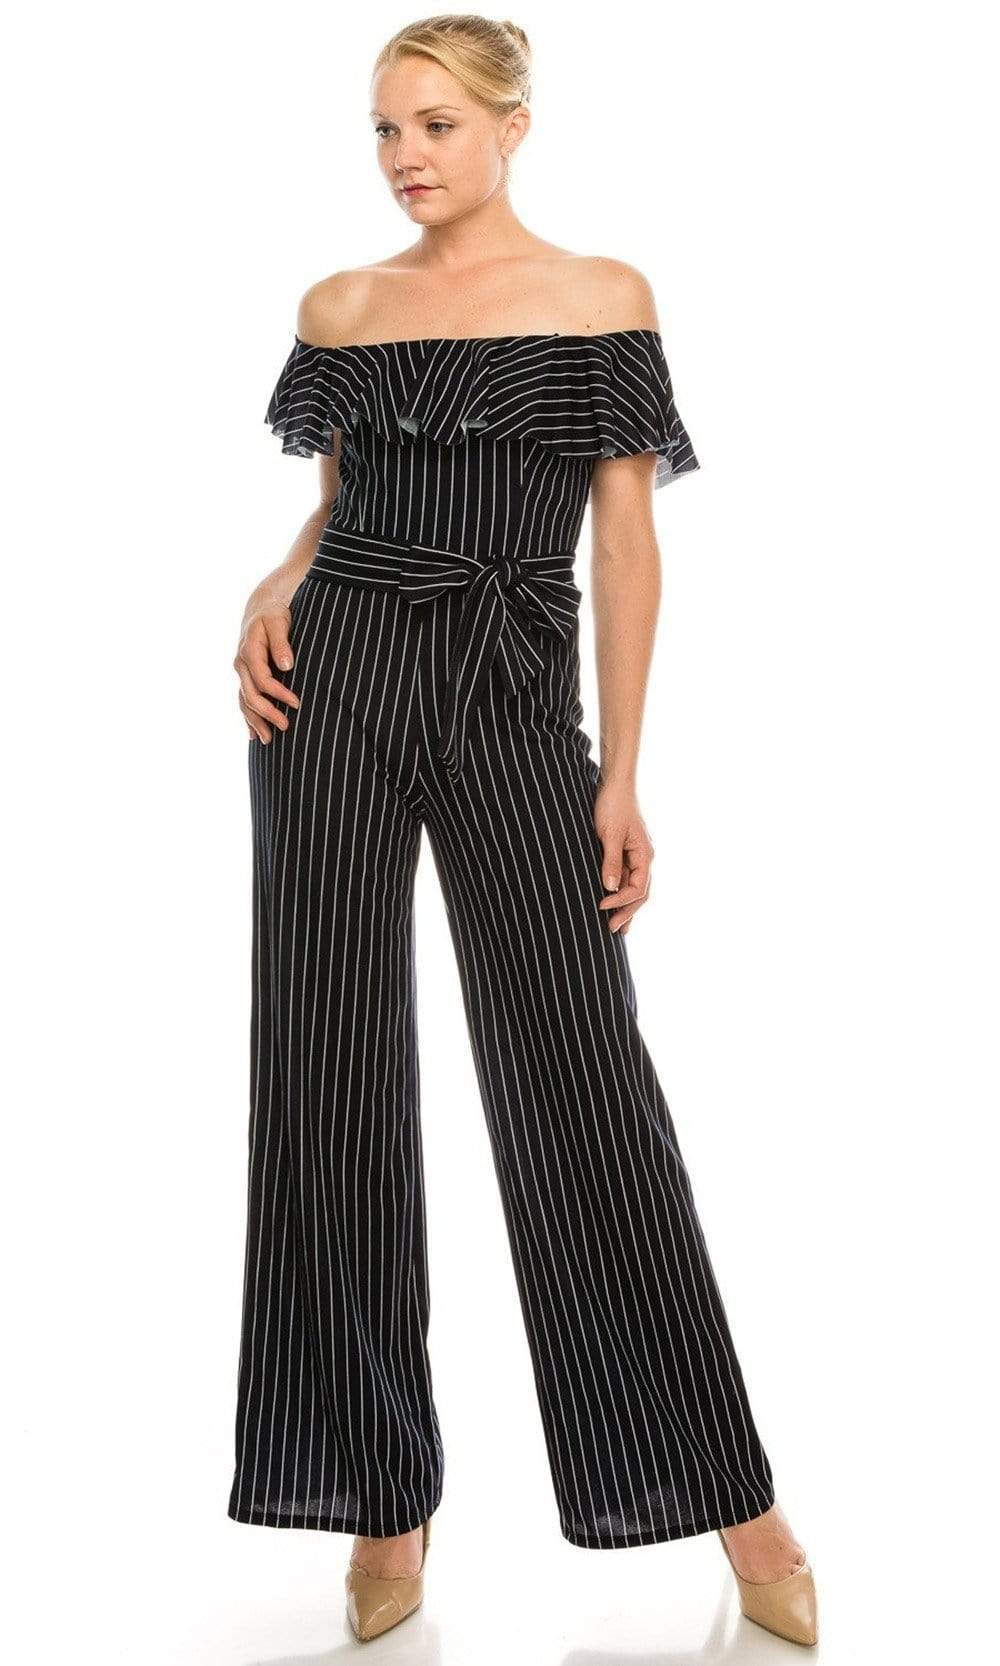 Bebe - 701351 Off-Shoulder Jumpsuit from Bebe